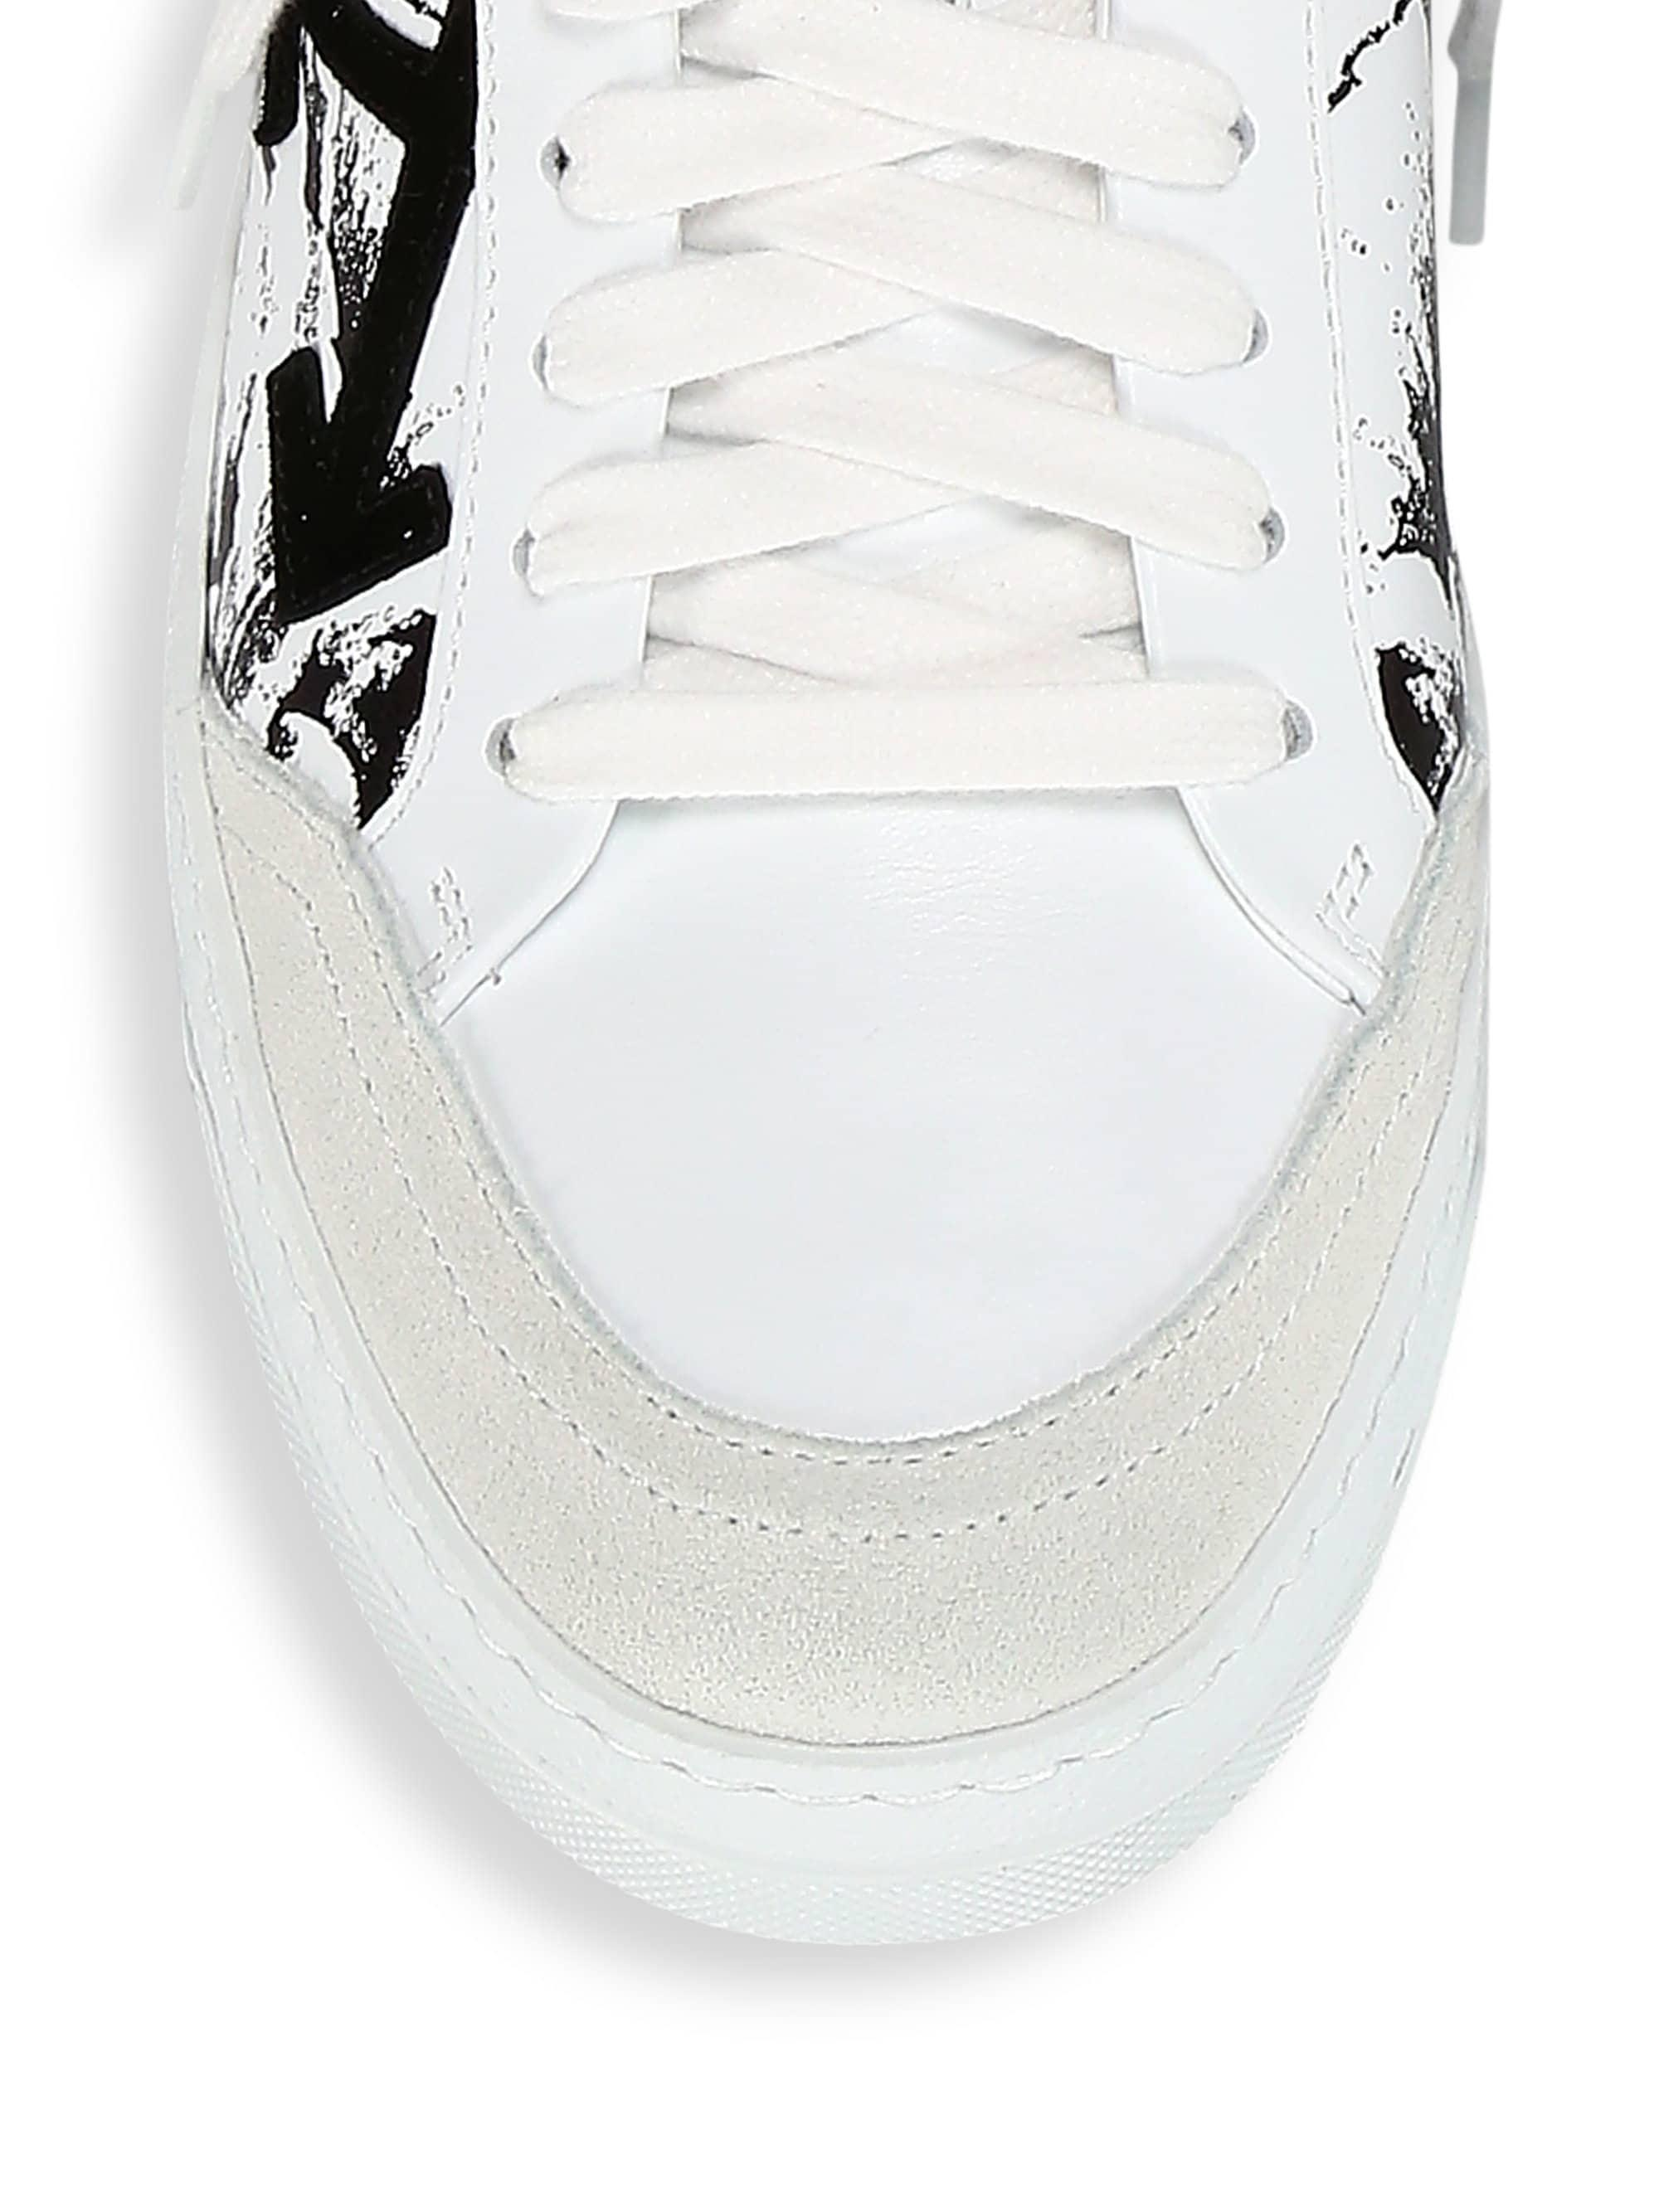 ce98b80921c8 Off-White c o Virgil Abloh Women s Floral Leather Sneakers - White Black in  White - Lyst